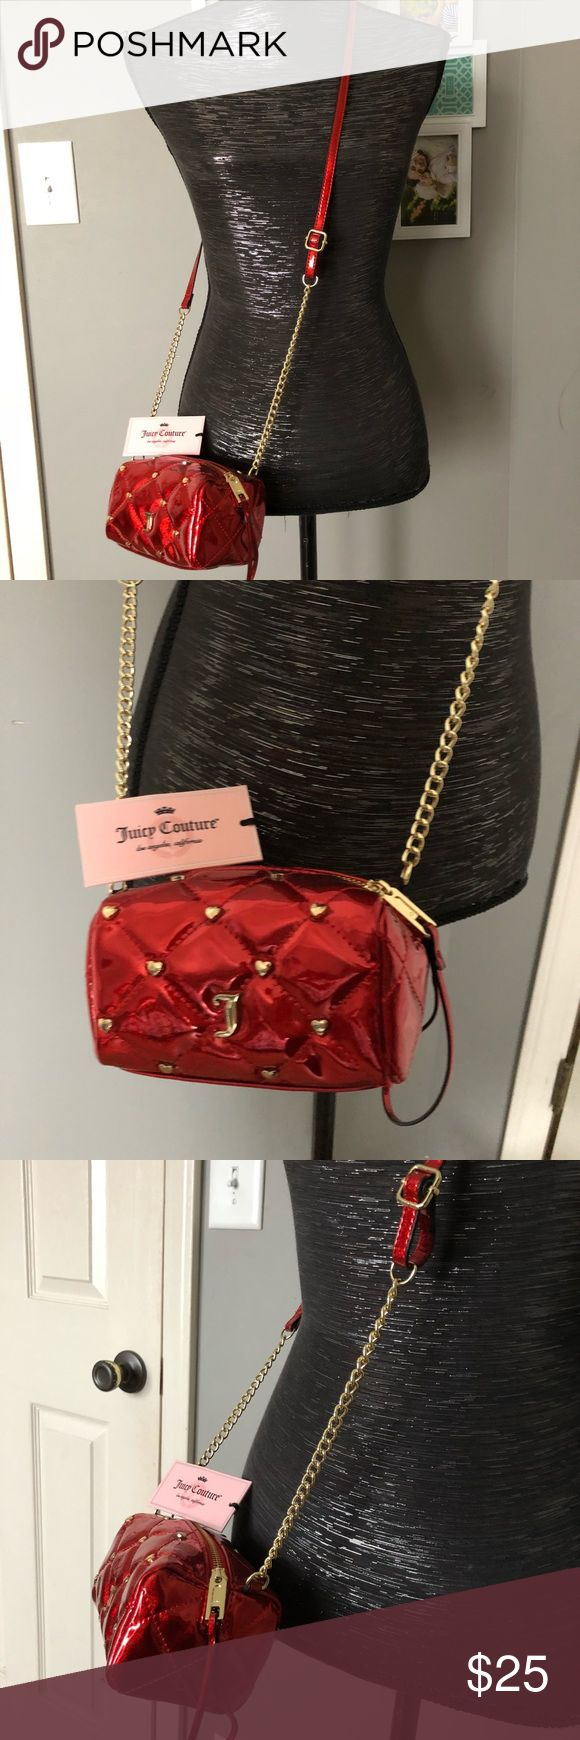 Authentic juicy couture bag New with tags authentic small red bag! Juicy Couture Bags Crossbody Bags